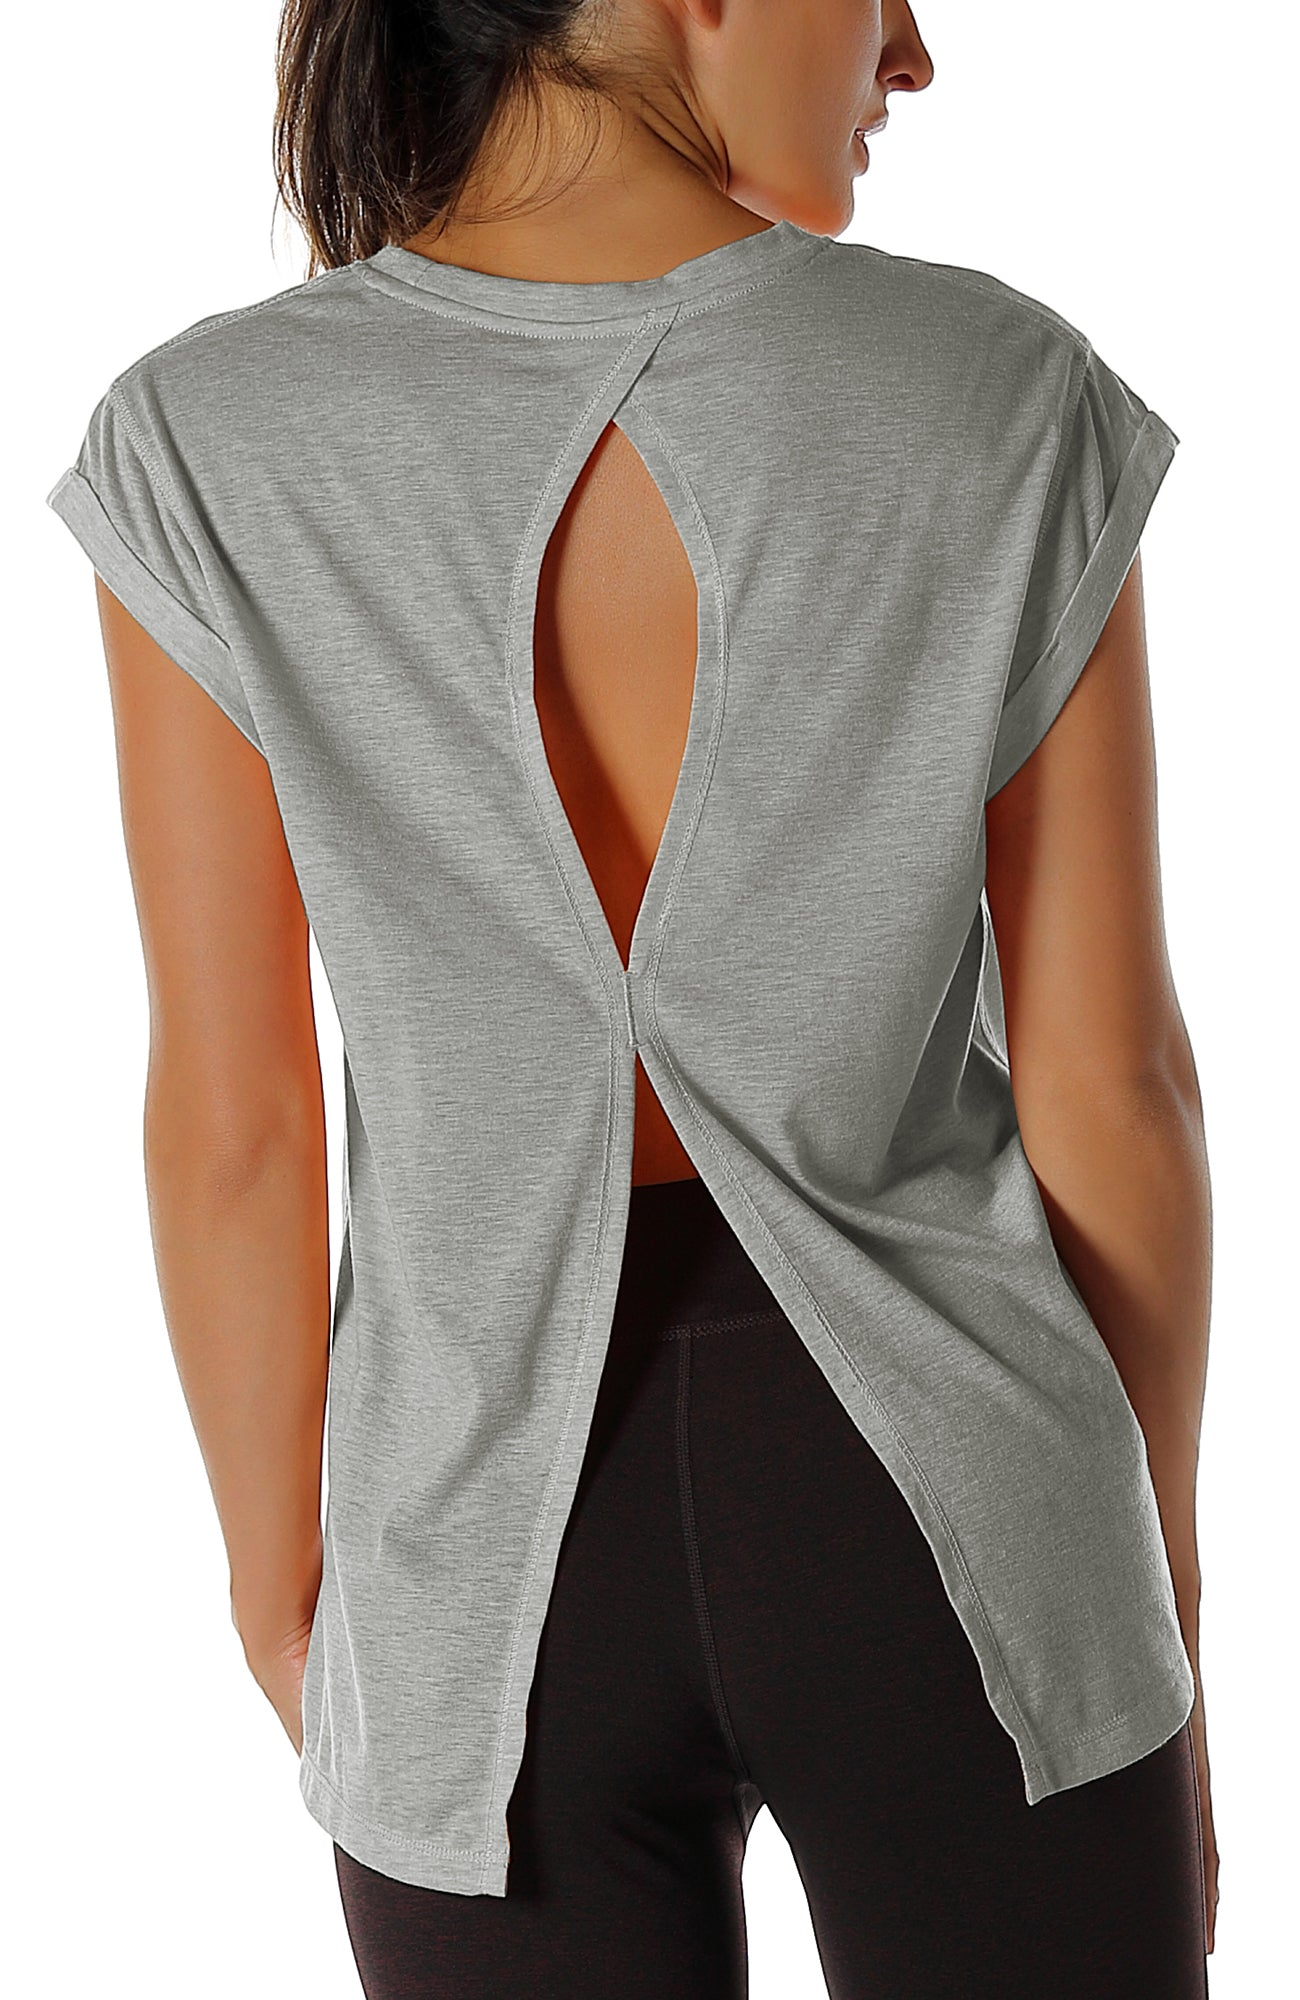 Pack of 2 icyzone Open Back Workout Top Shirts Yoga t-Shirts Activewear Exercise Tops for Women